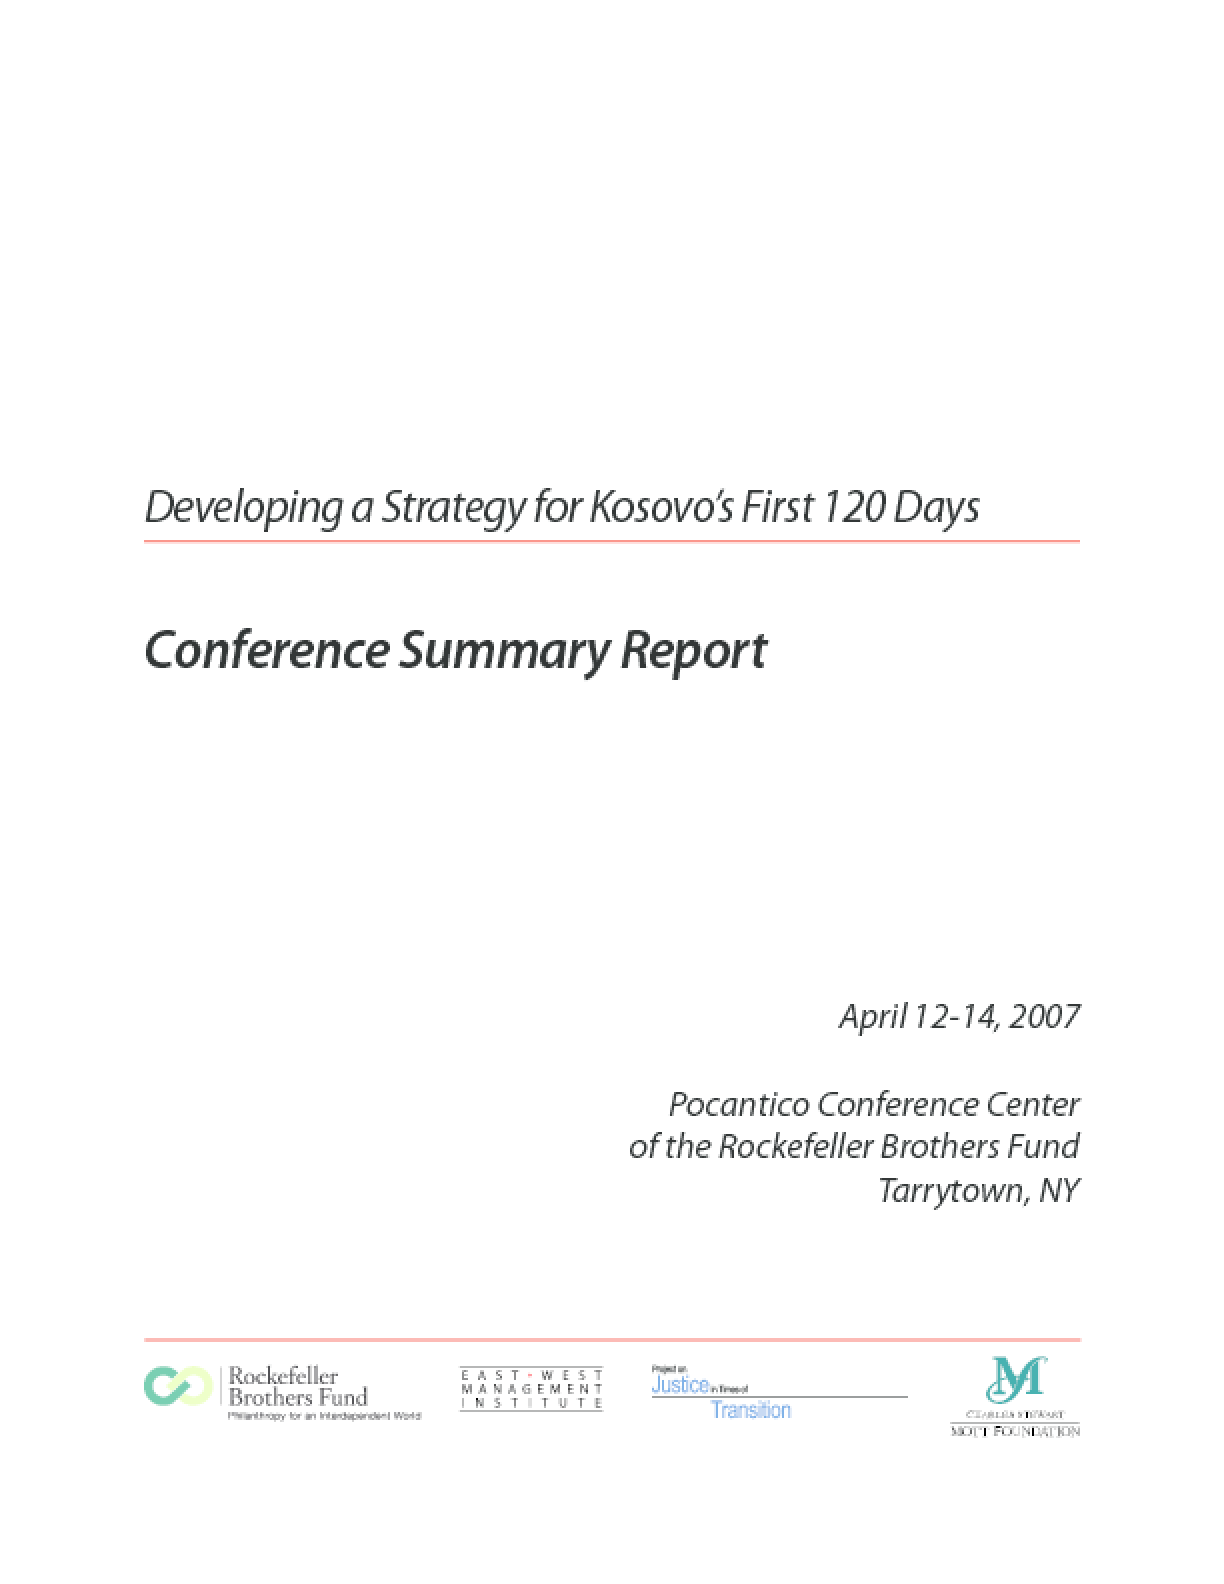 Developing a Strategy for Kosovo's First 120 Days: Conference Summary Report